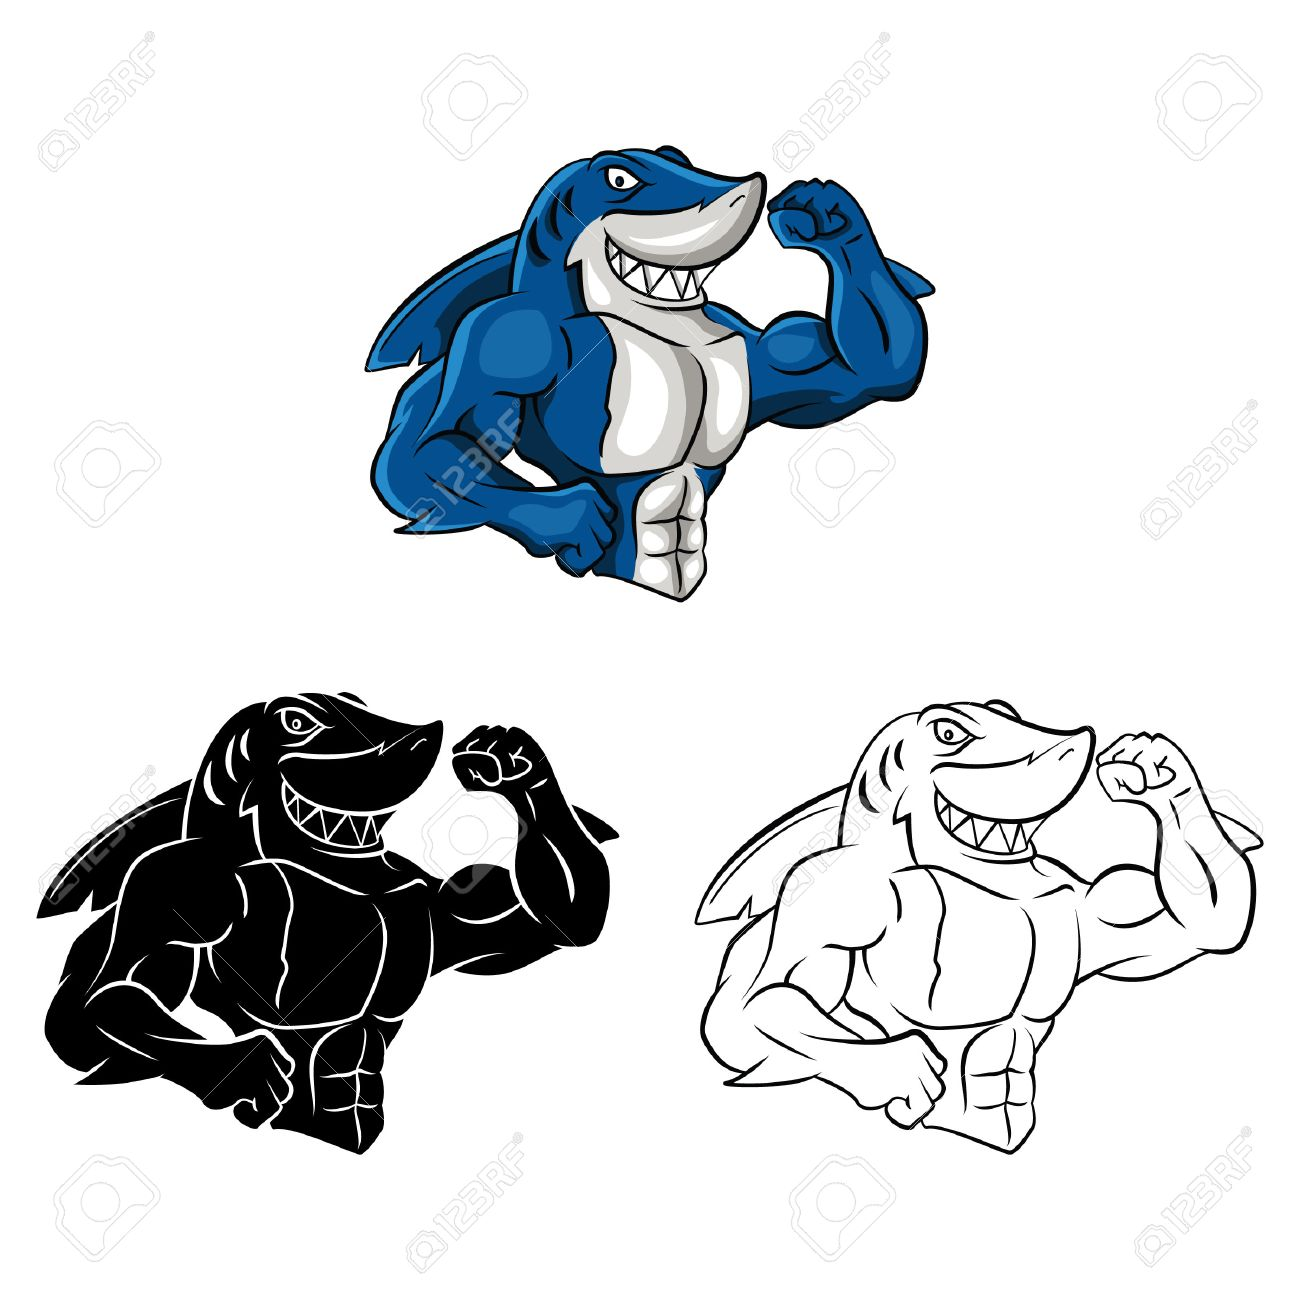 Coloring Book Shark Muscle Cartoon Character - Vector Illustration ...